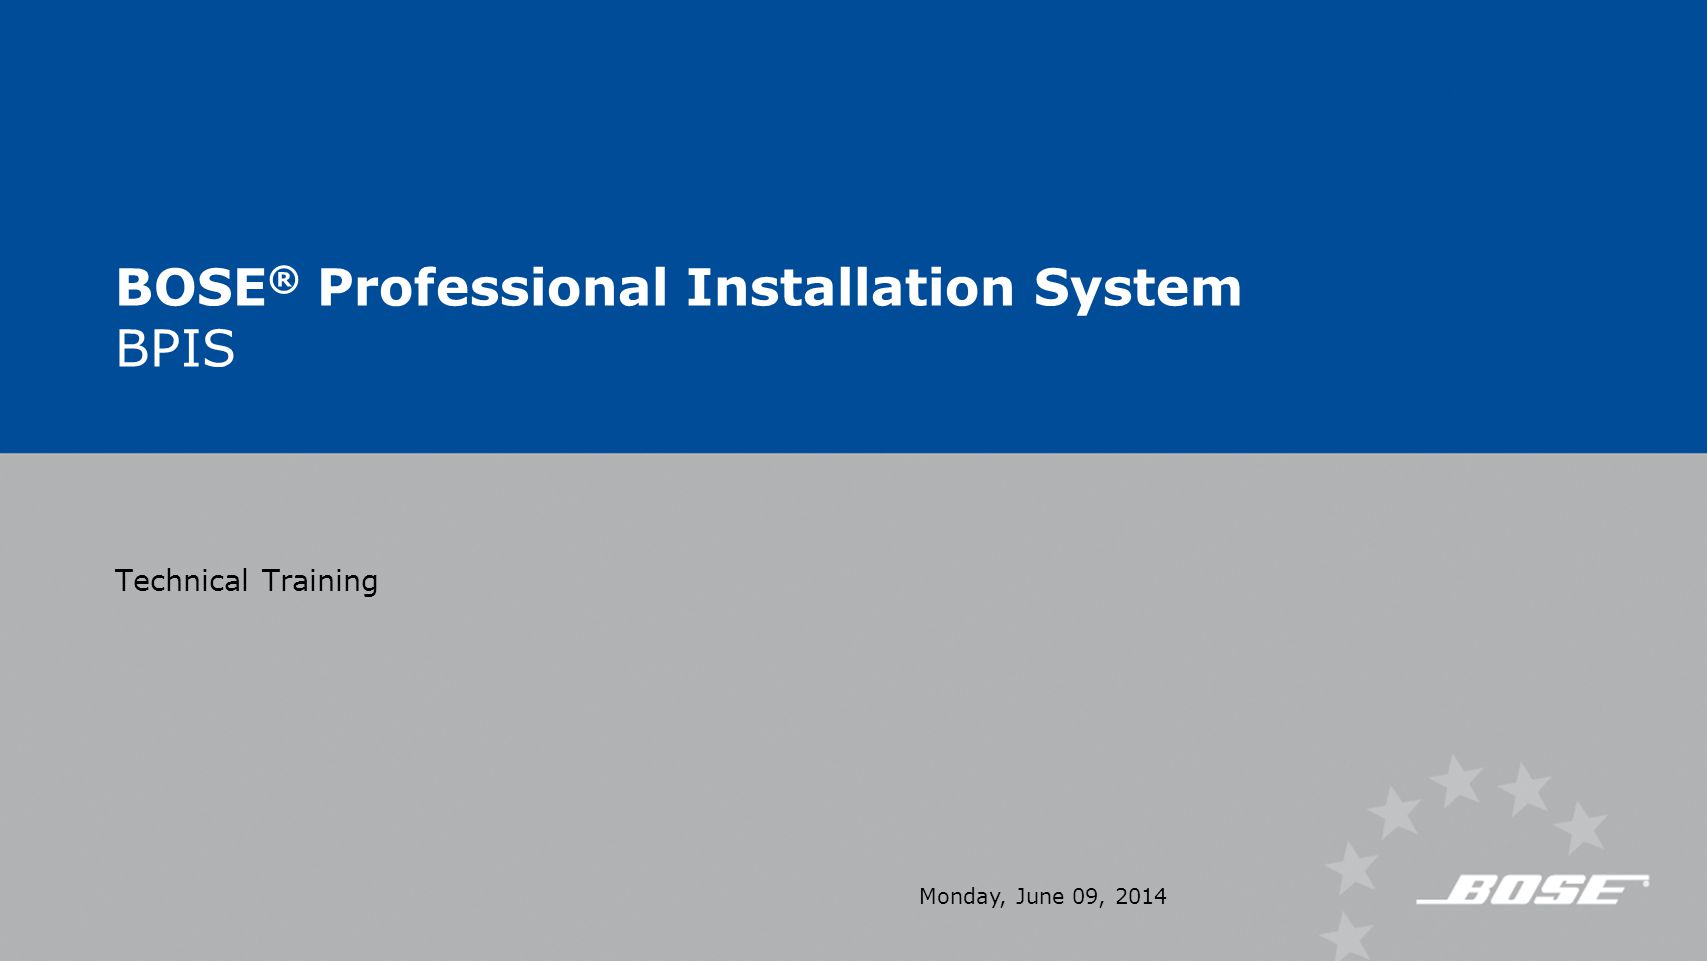 BOSE® Professional Installation System BPIS